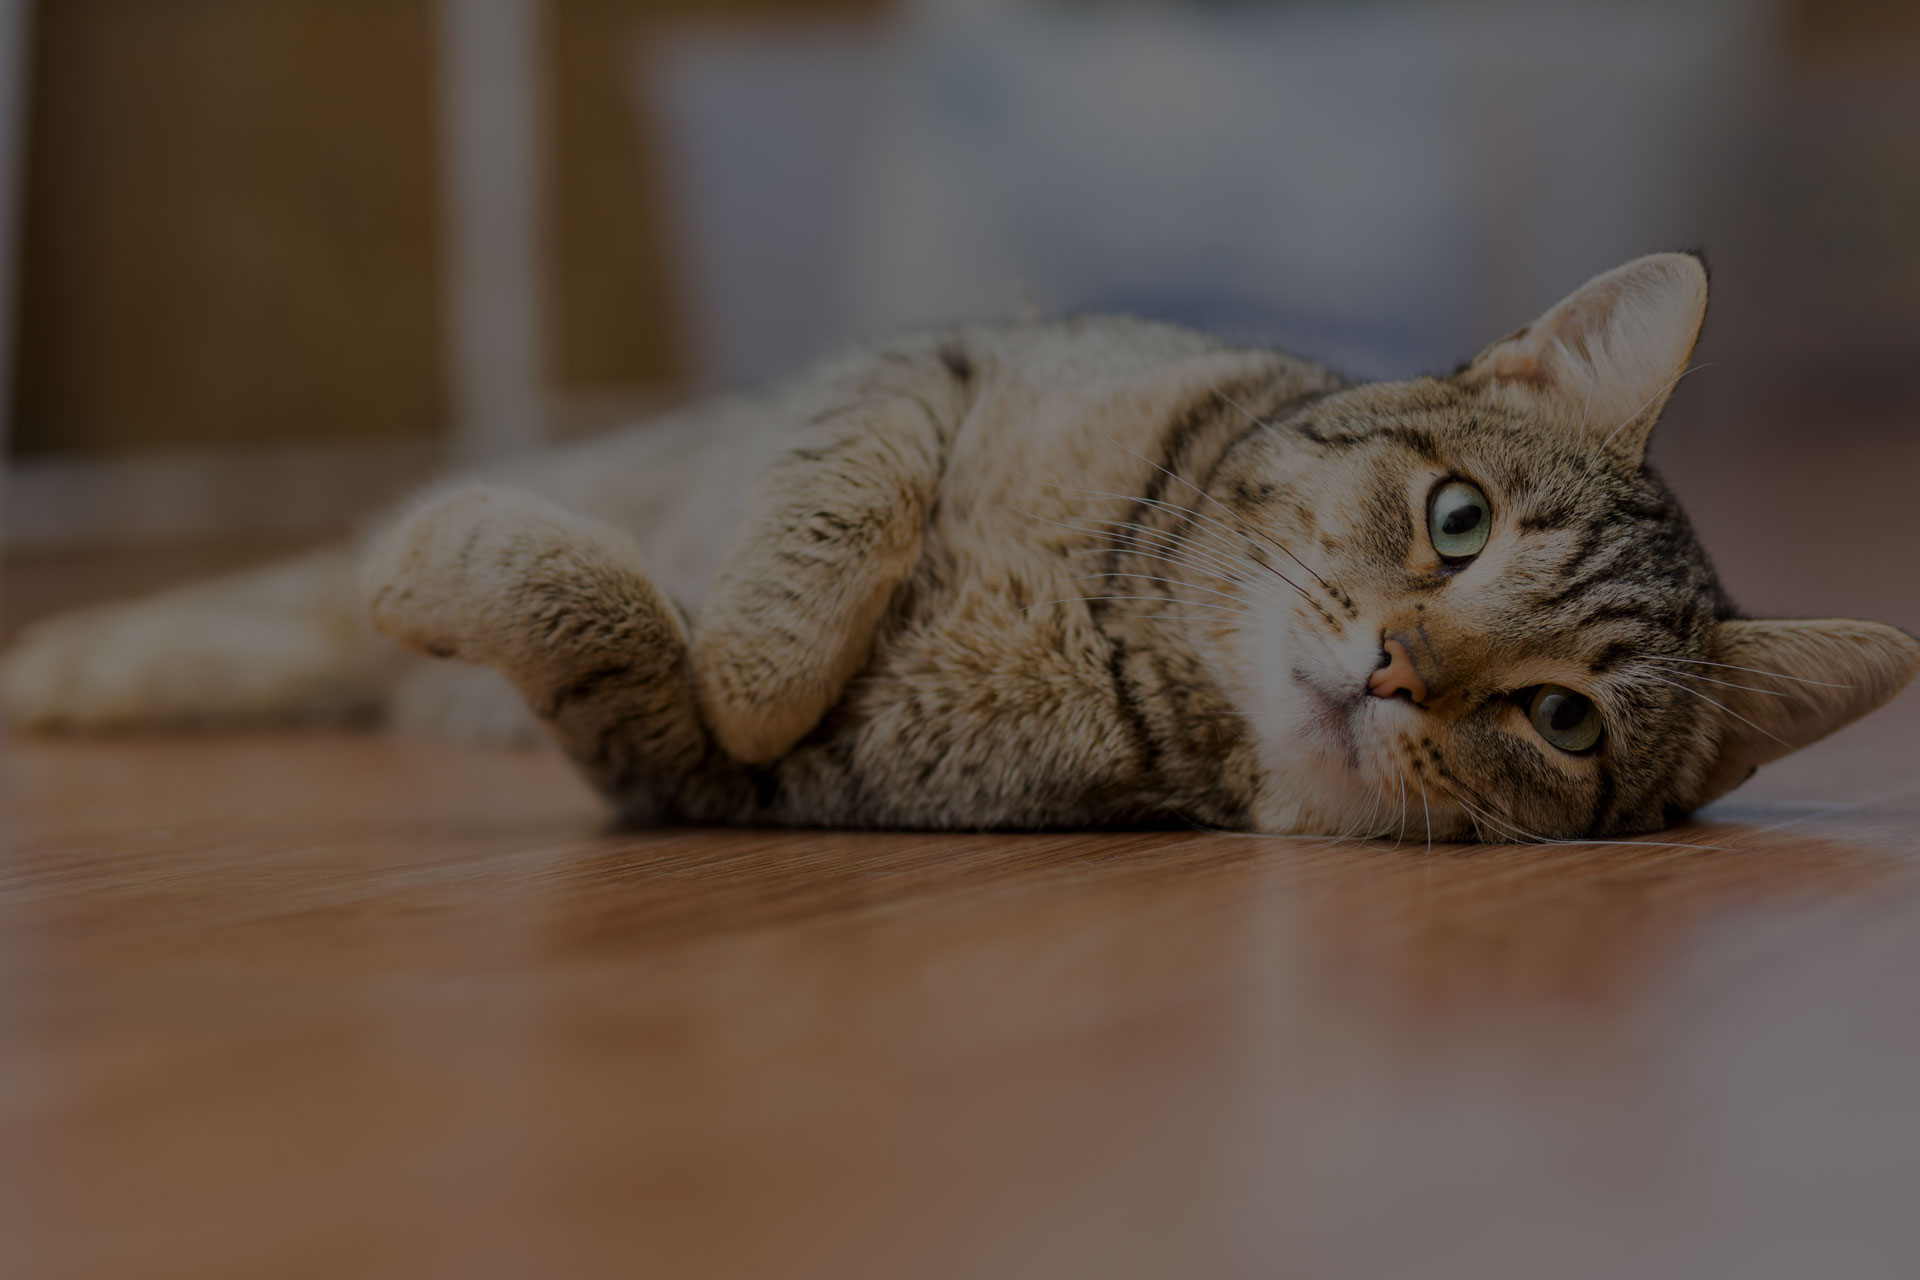 Cat on wooden floor